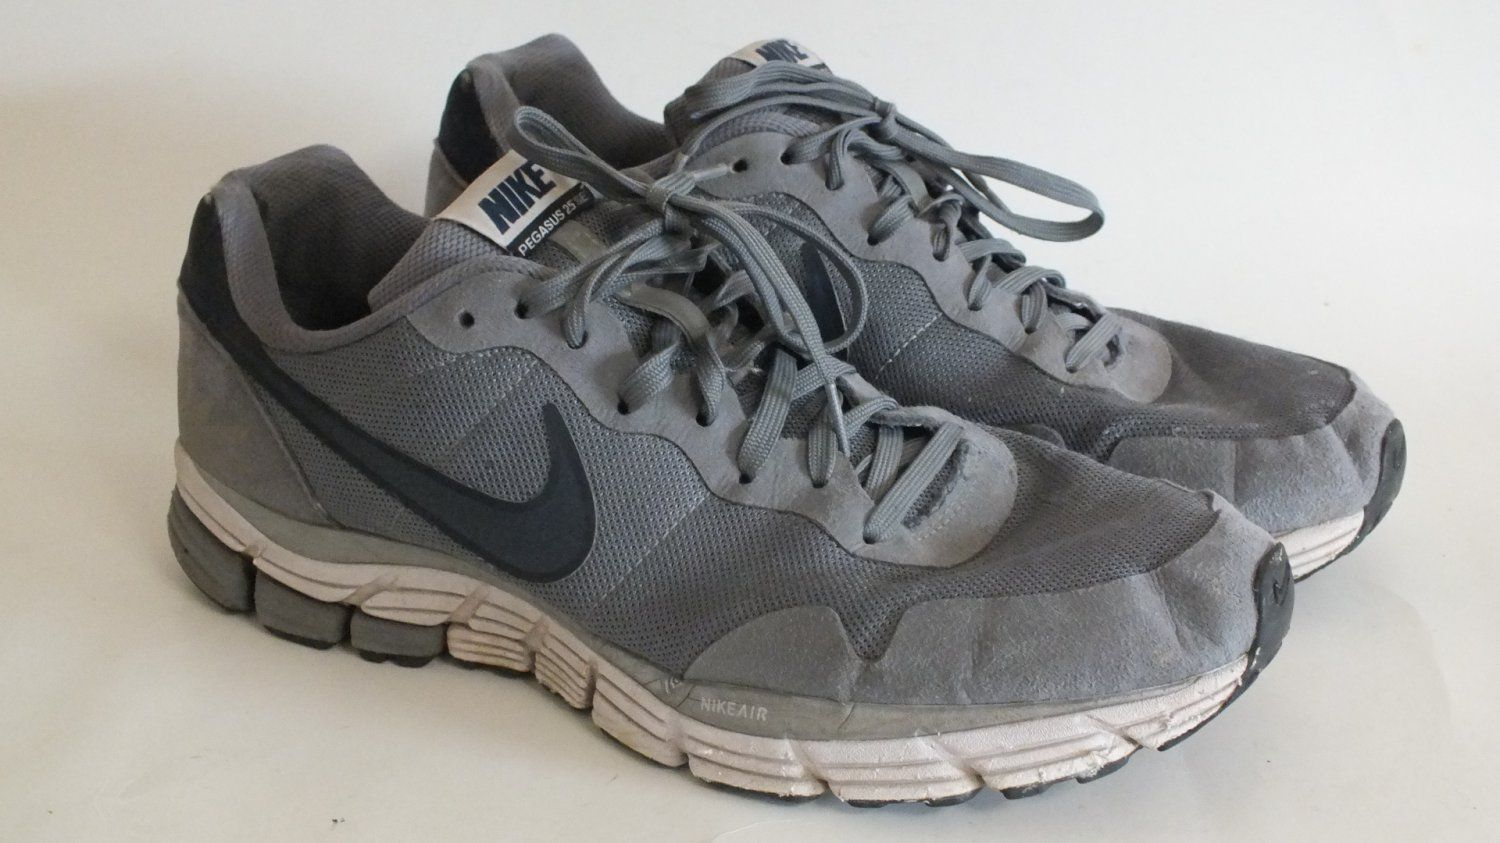 buy online 5c0d7 6950f Gray Nike anniversary pegasus+ running shoes - Yahoo Search ...